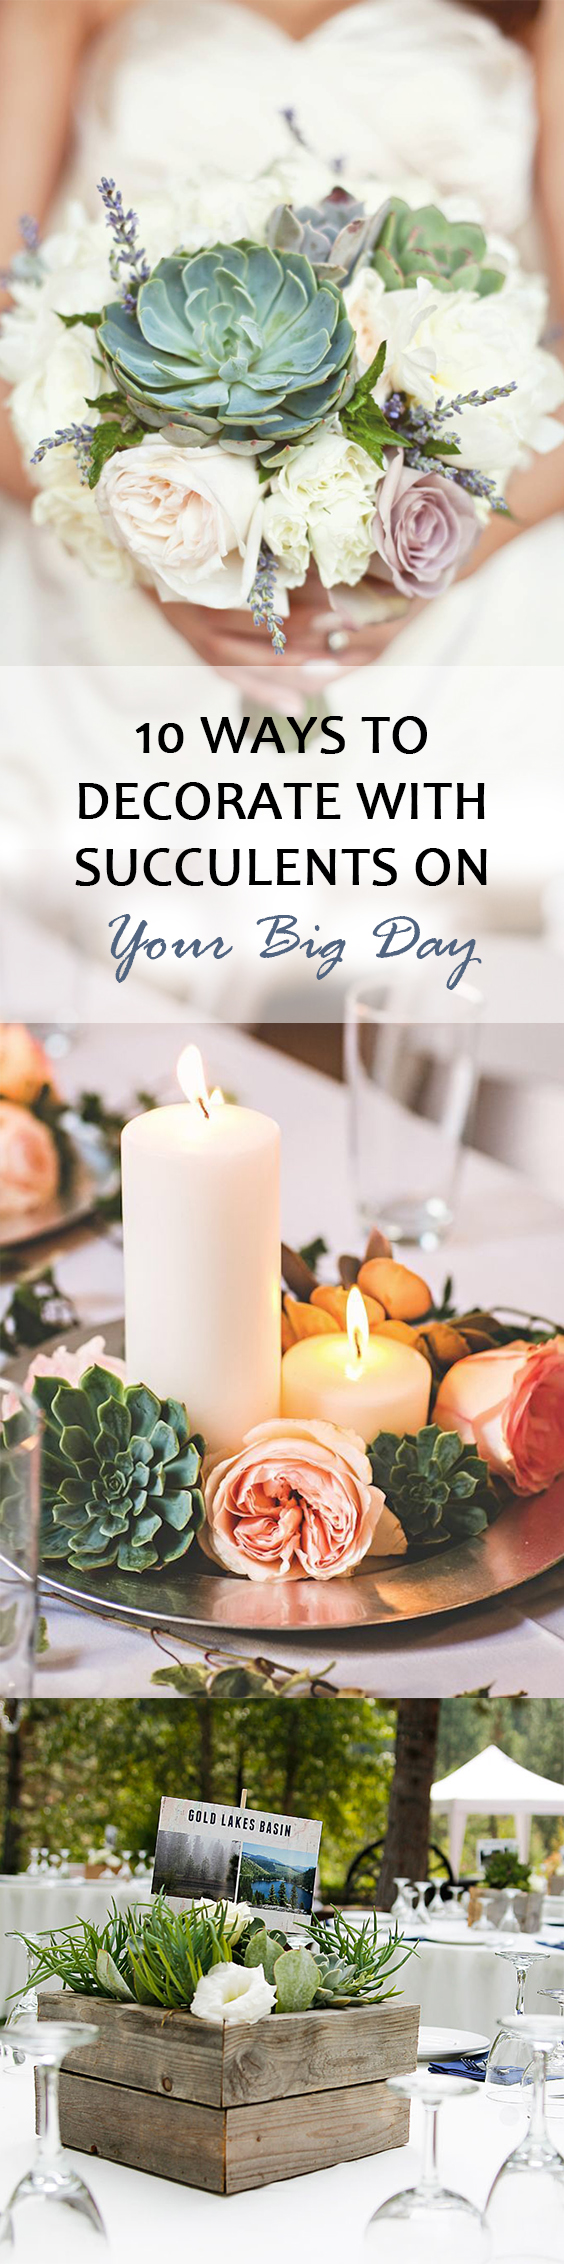 Decorate with Succulents | How to Decorate with Succulents | Wedding Day with Succulents | Succulents | DIY Succulent Decorations | DIY Wedding Succulent Decor | Succulent Wedding | Succulent Decorations